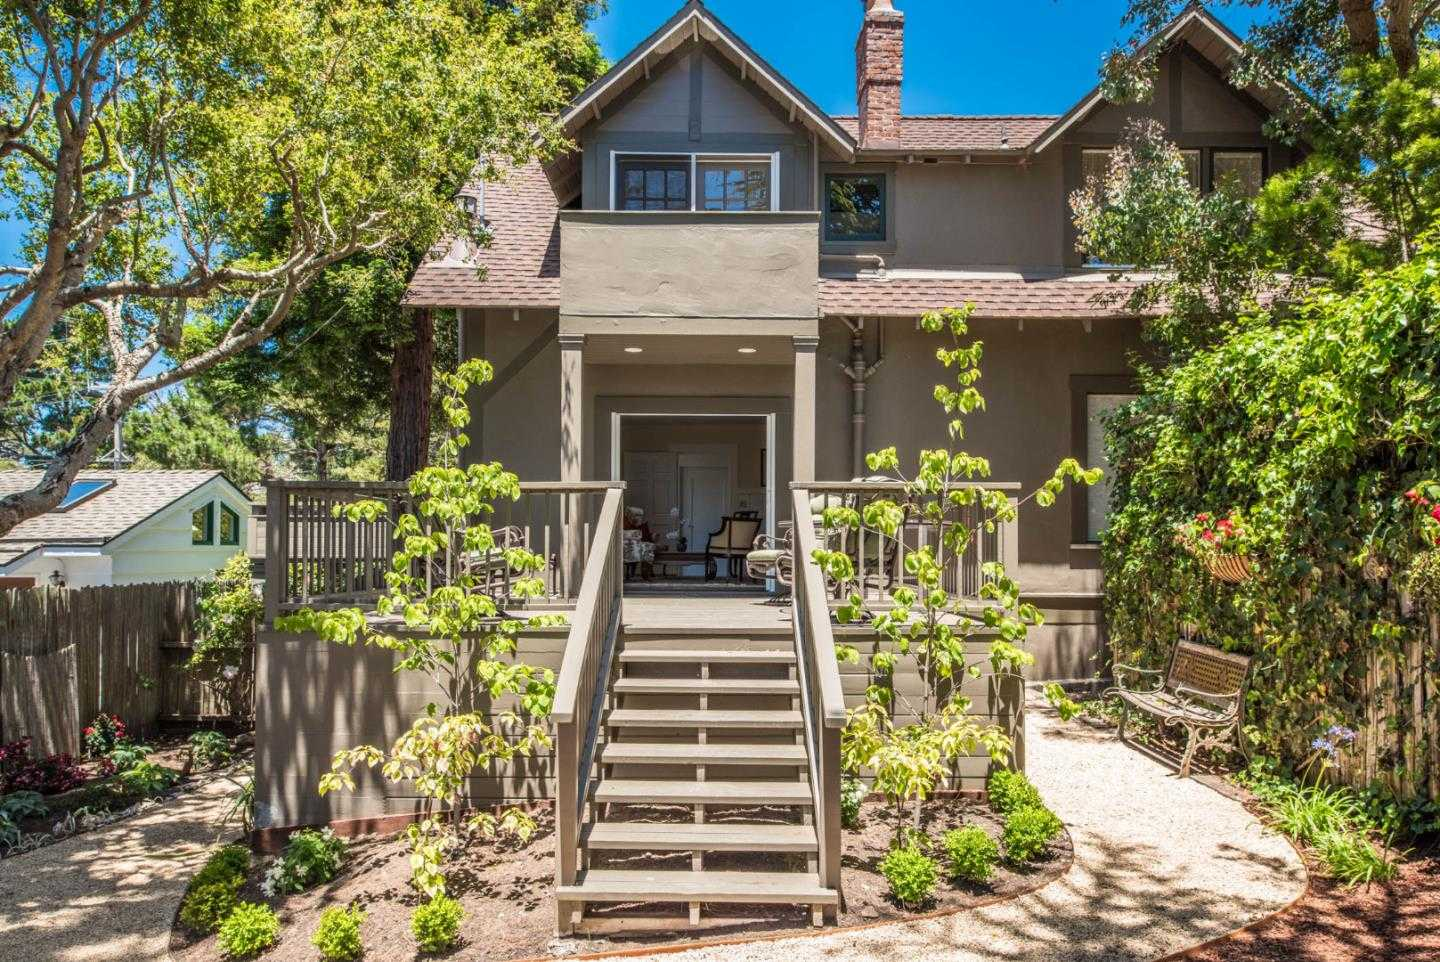 $2,175,000 - 4Br/3Ba -  for Sale in Carmel